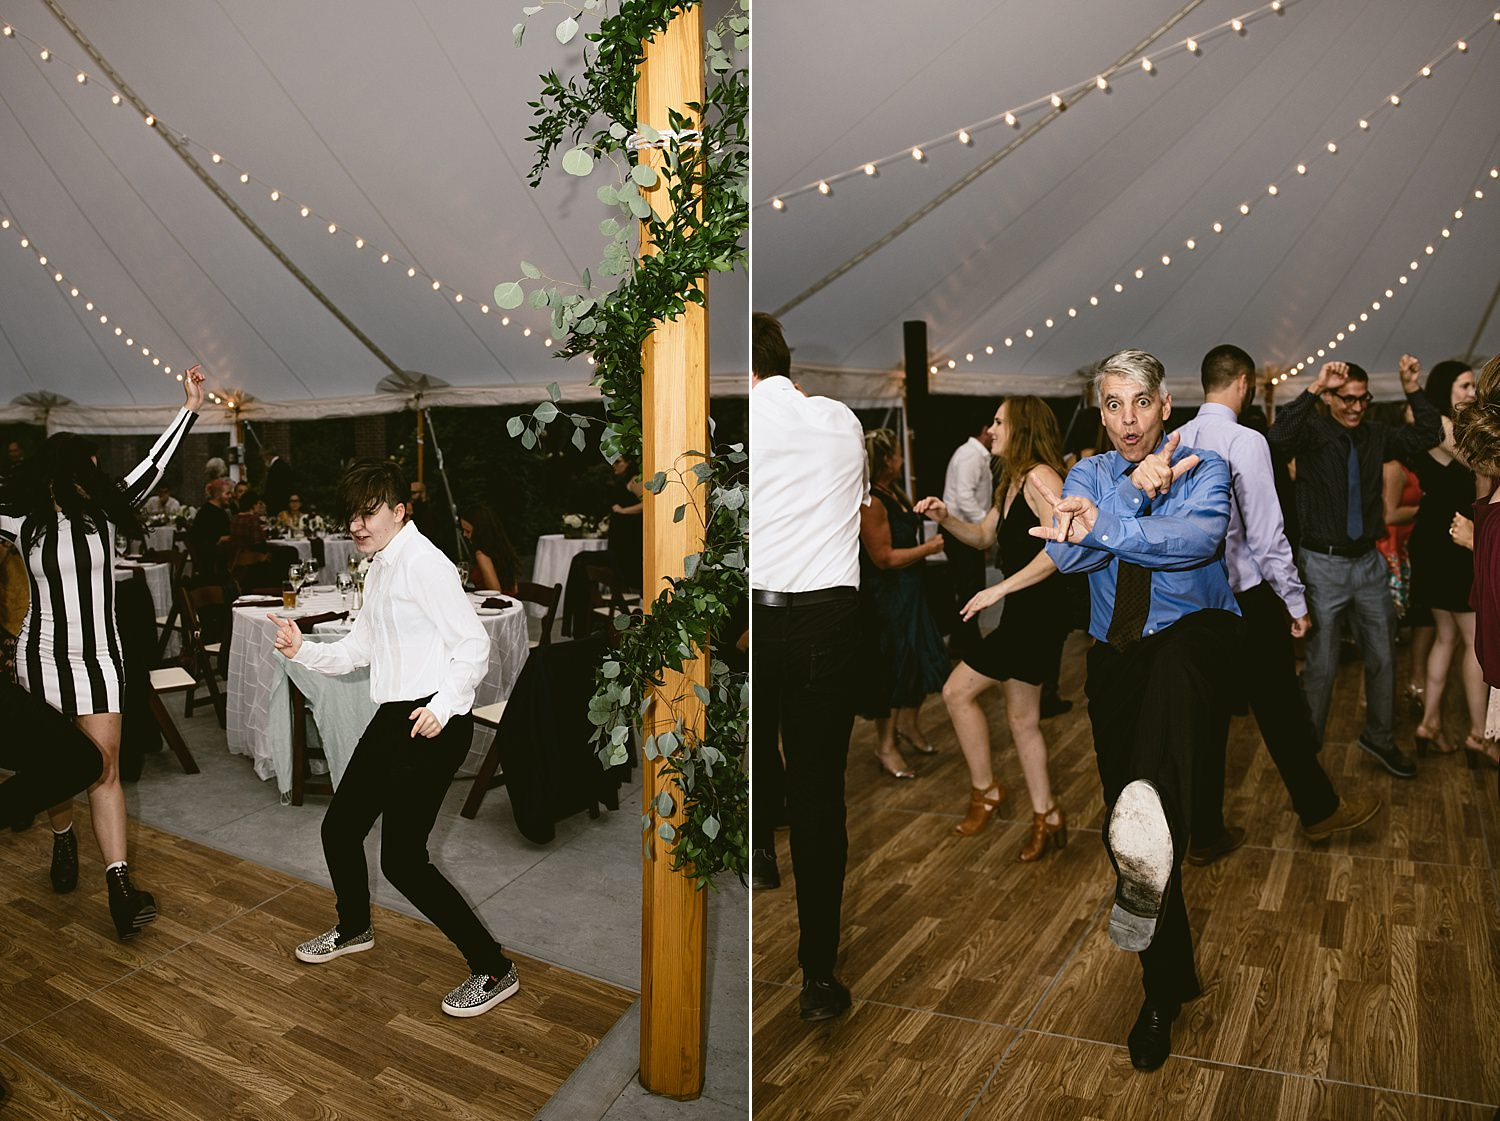 Wedding guests dancing wild